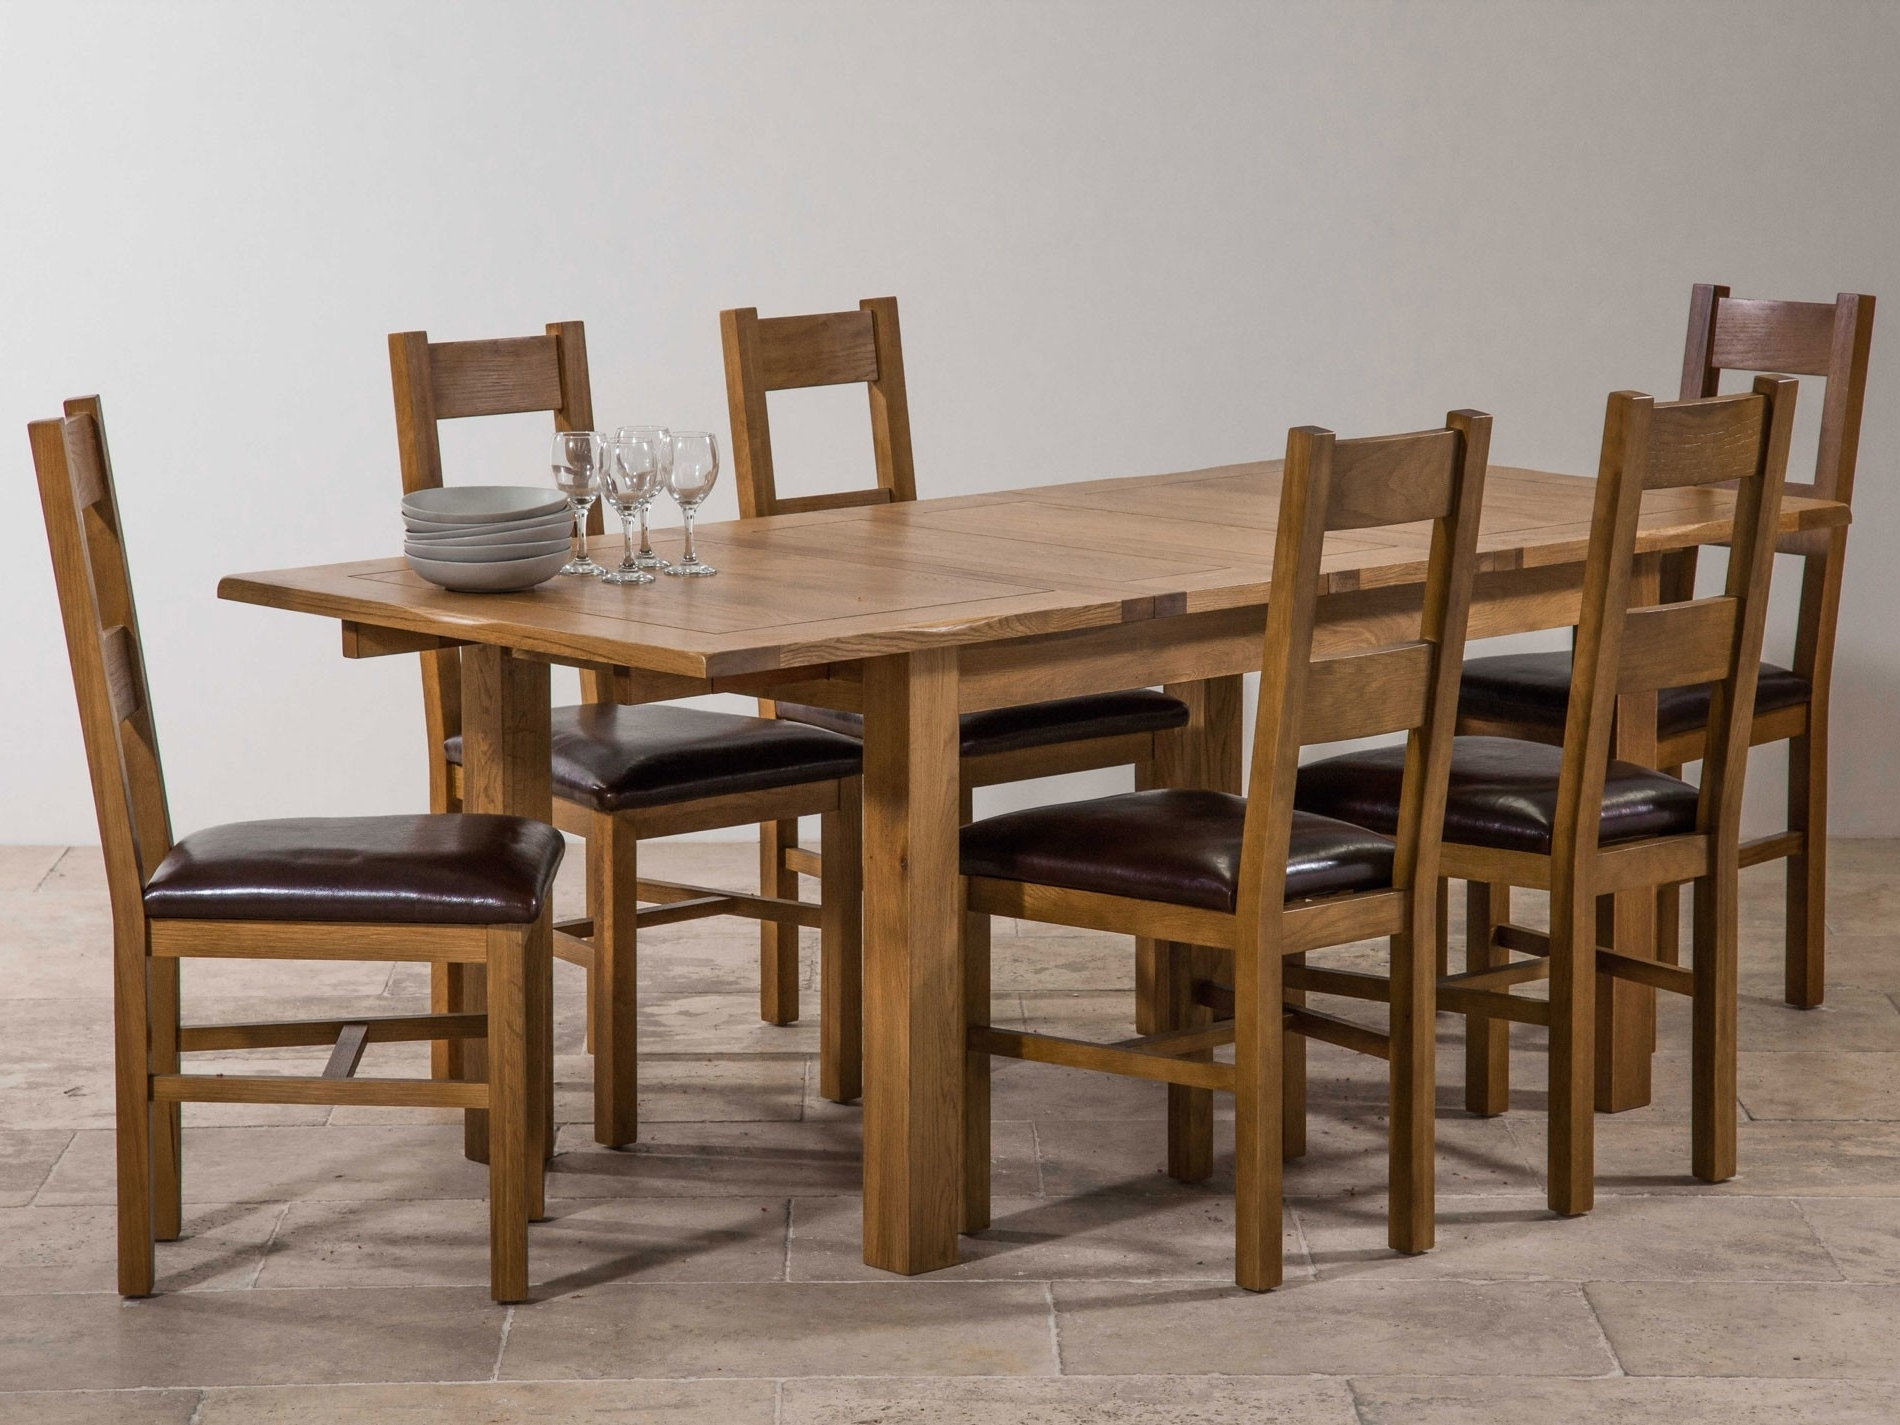 Square Extending Dining Table And Chairs Inspirational Masso Regarding Most Recently Released Oak Extending Dining Tables And Chairs (View 12 of 25)